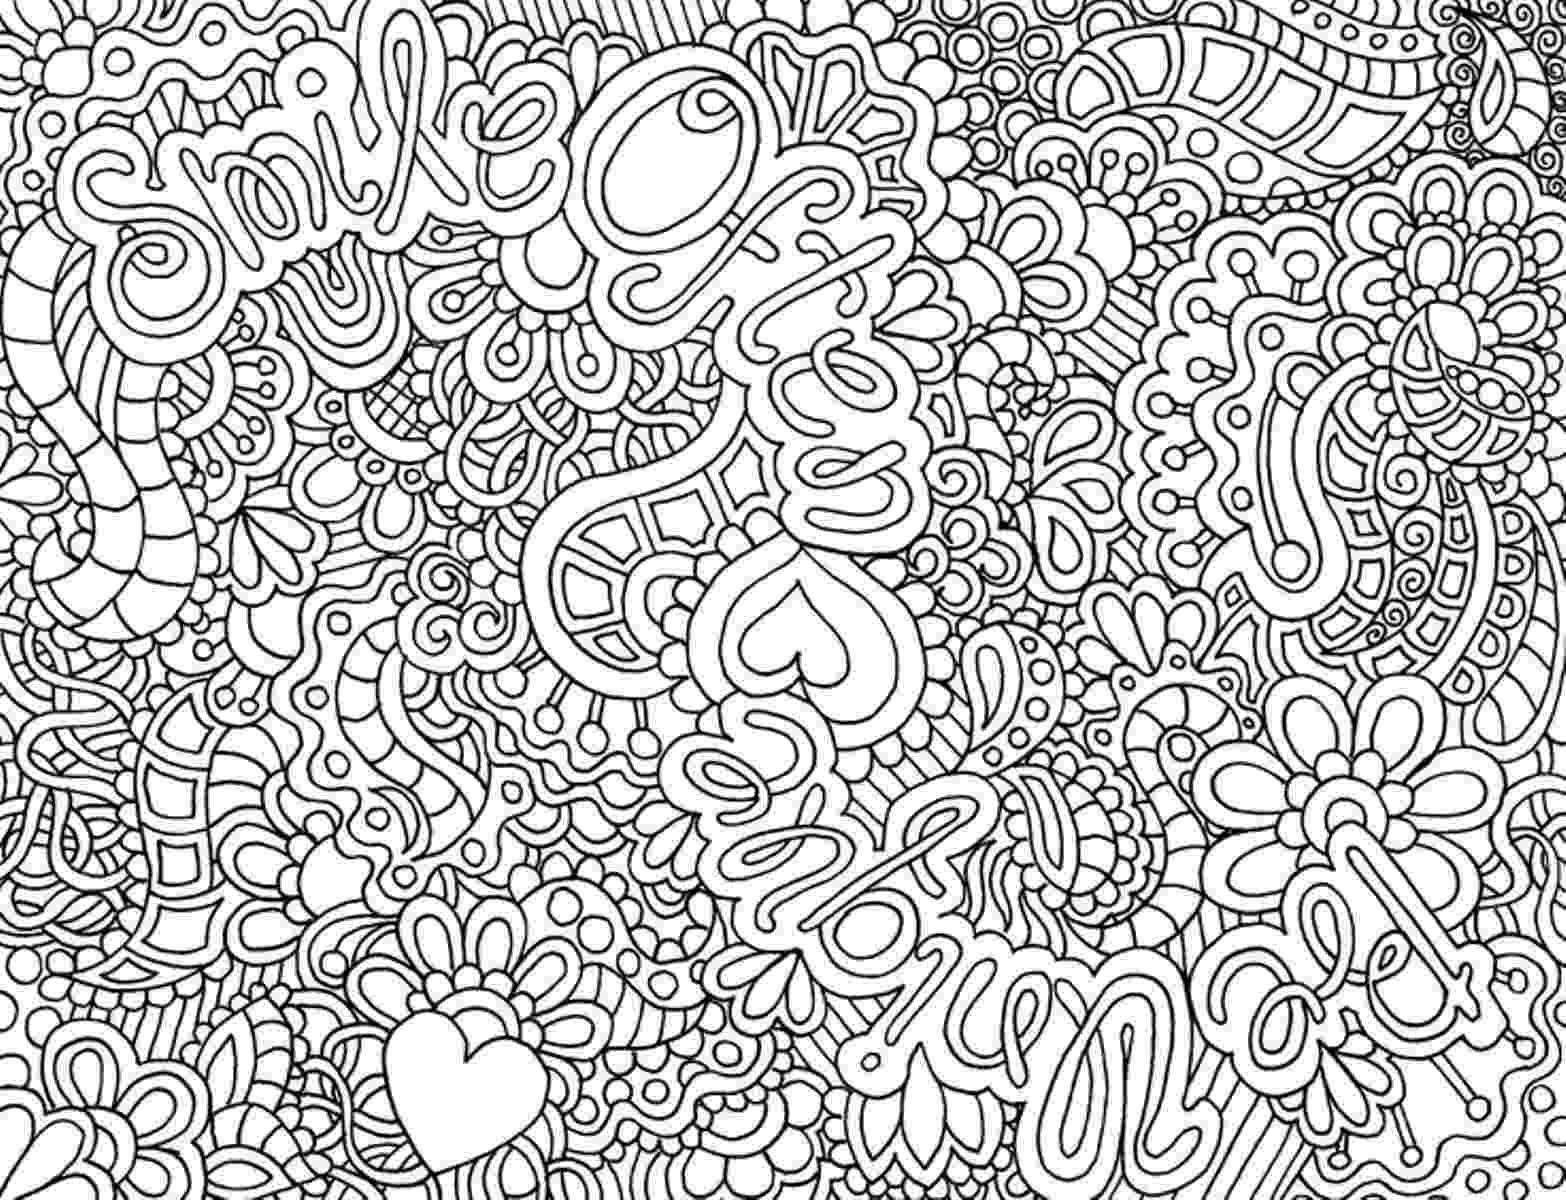 printable coloring pages for girls 10 and up coloring town 10 girls printable up for pages and coloring